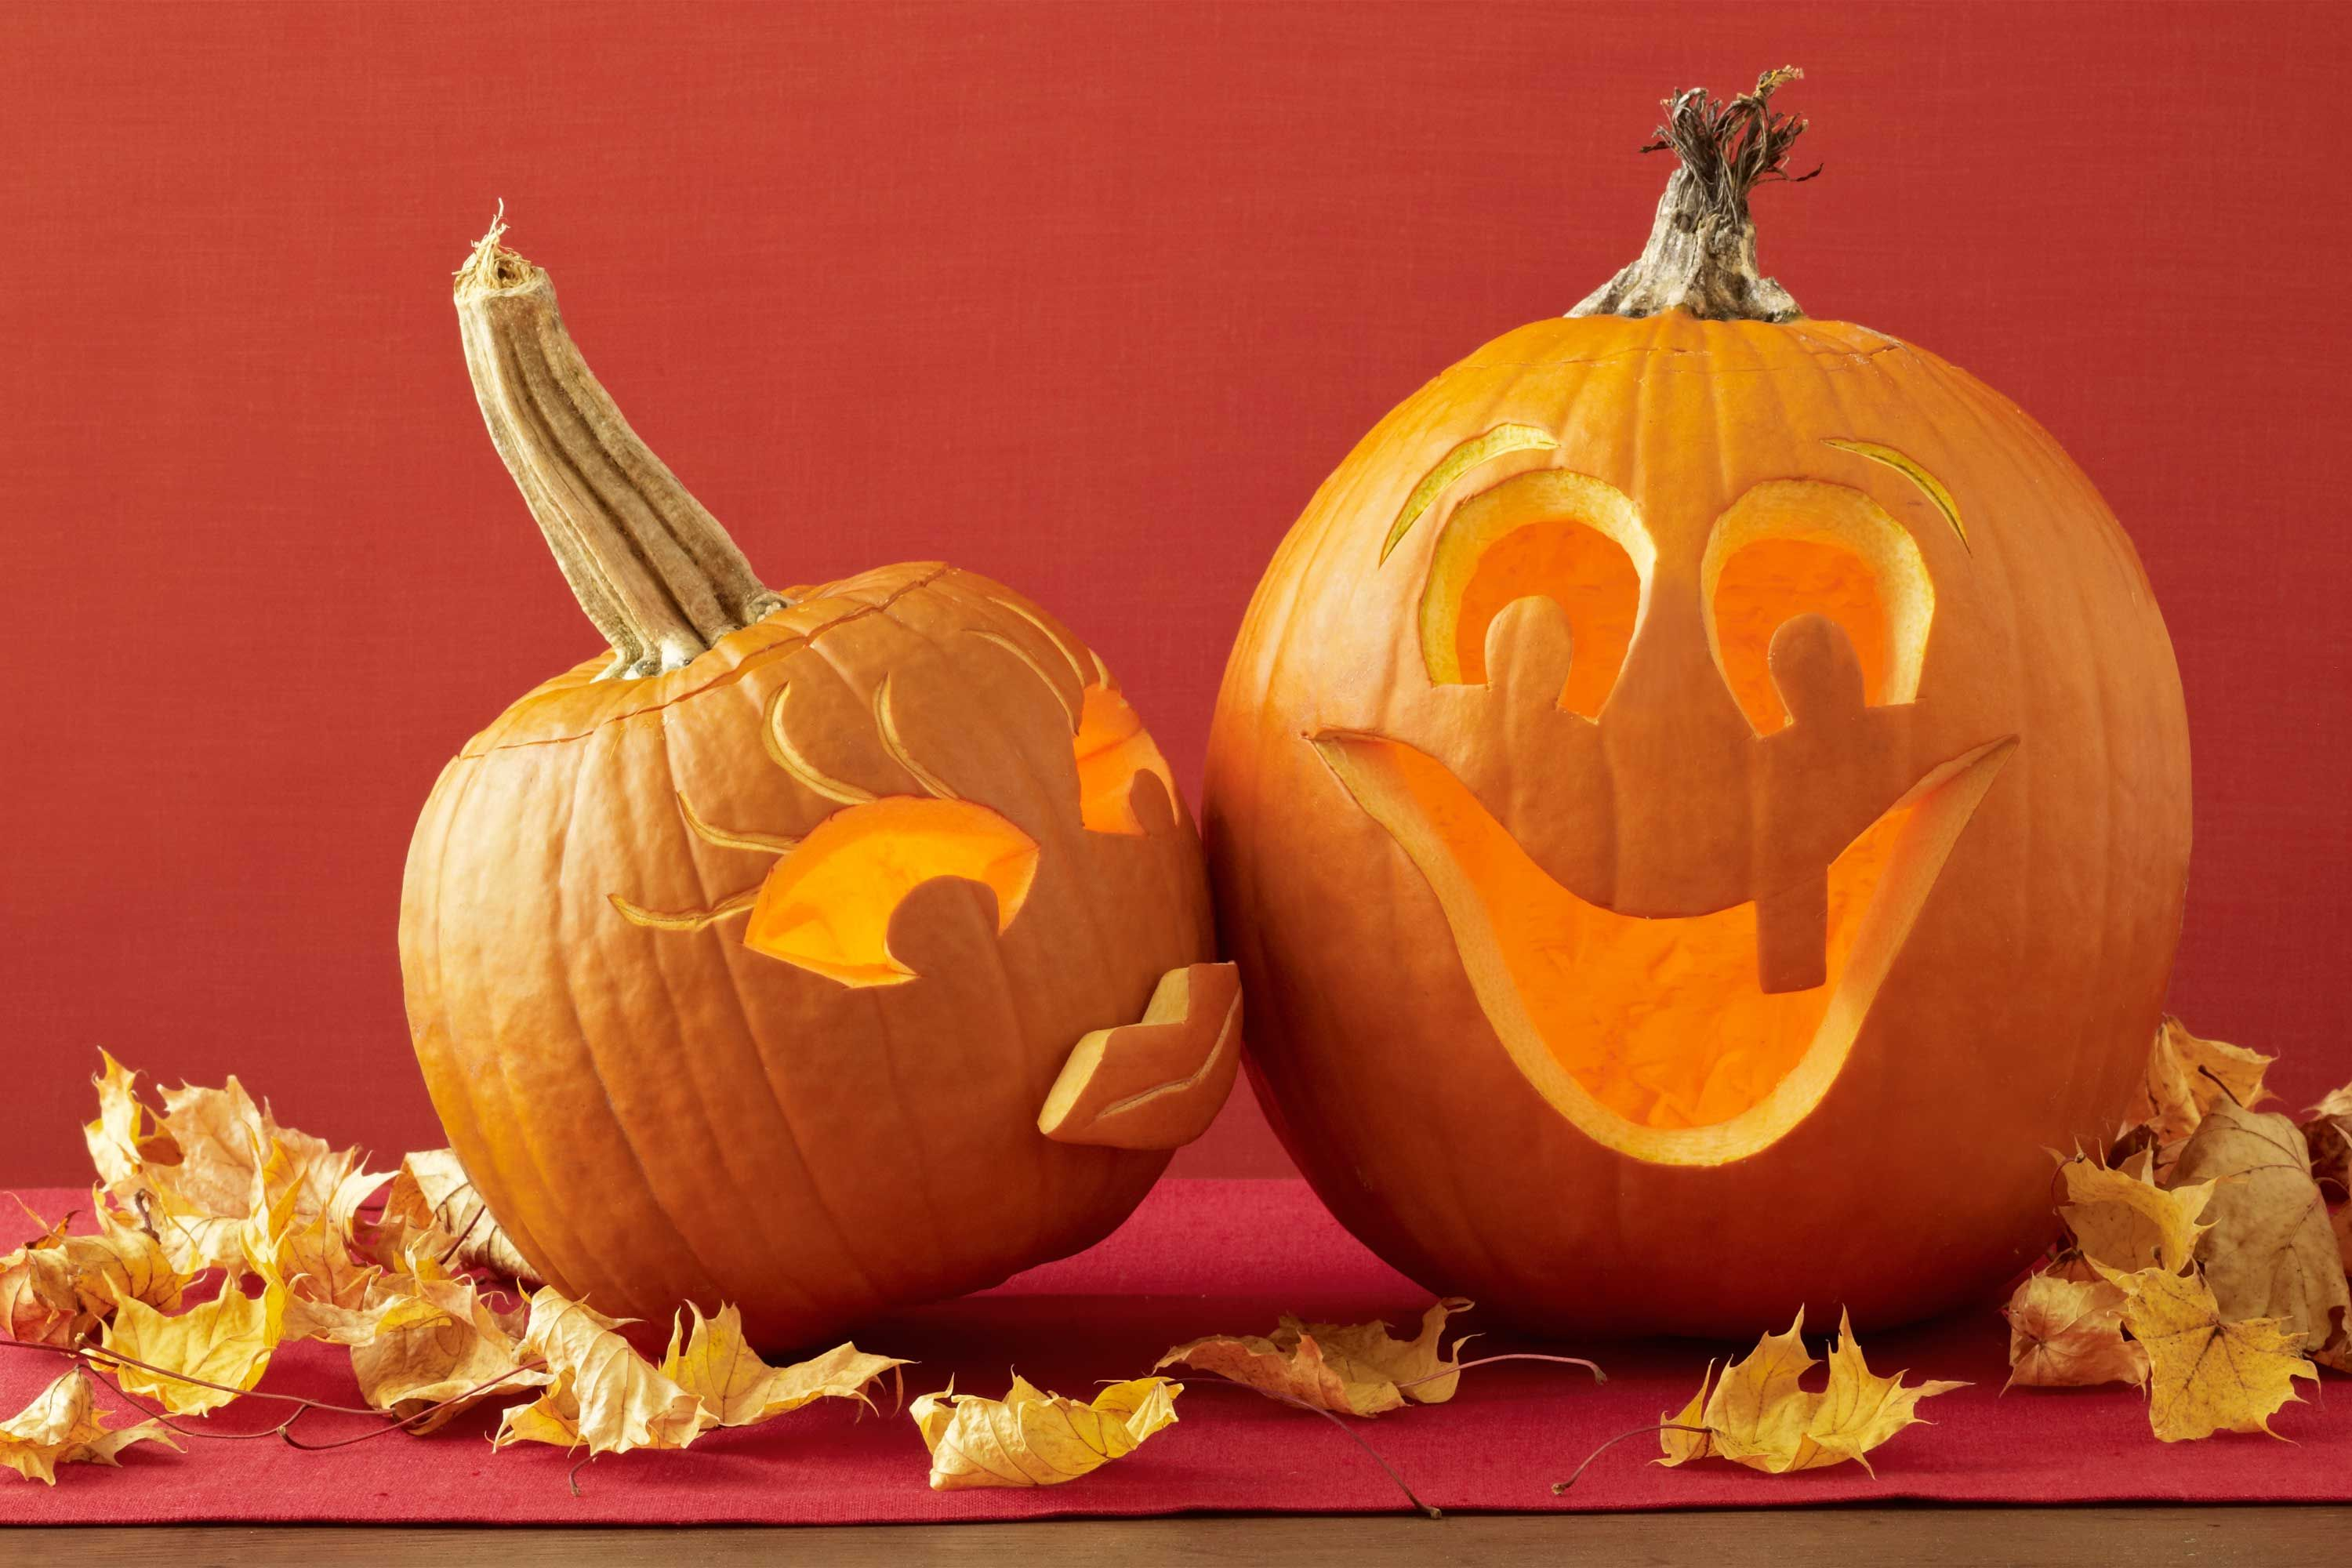 65+ of the Most Creative Pumpkin-Carving Ideas Pumpkin carvings - fall and halloween decorations